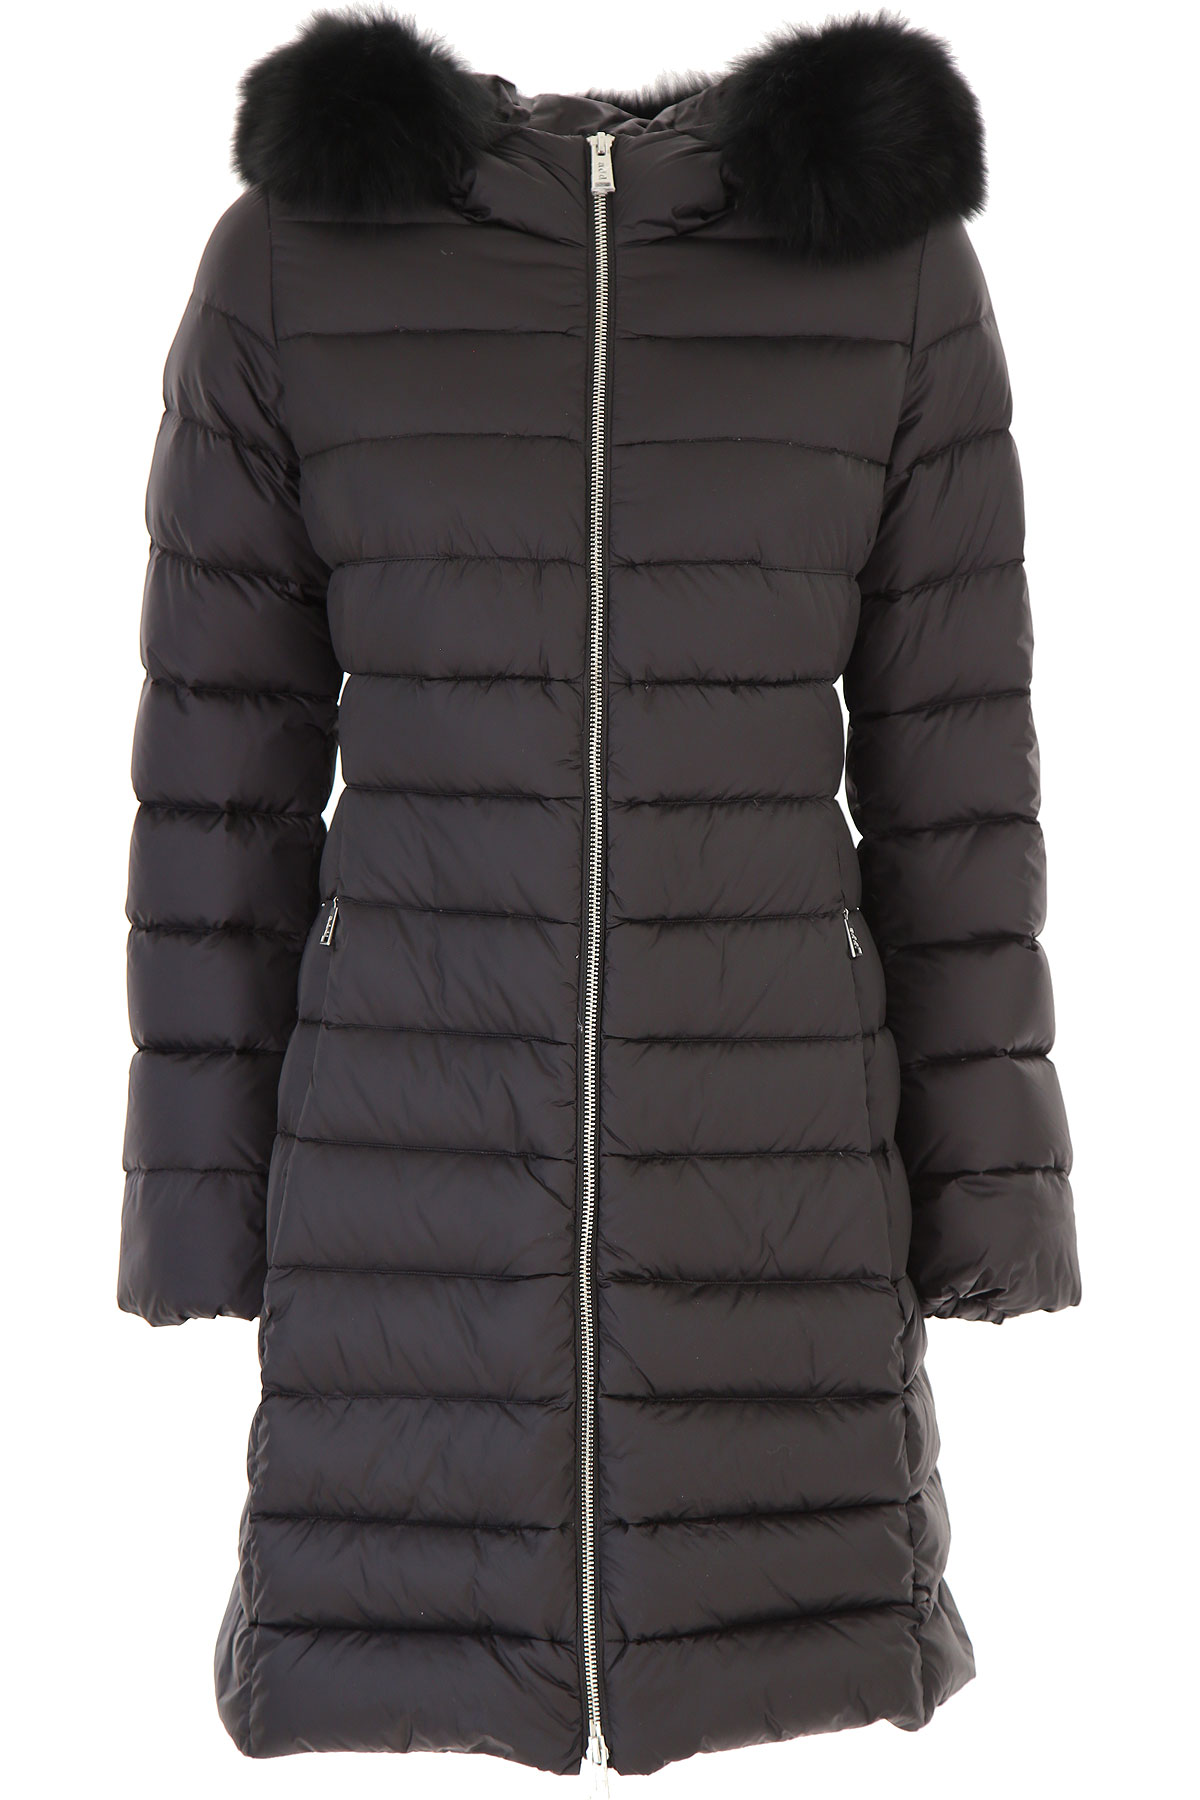 ADD Down Jacket for Women, Puffer Ski Jacket On Sale in Outlet, Black, Down, 2019, 12 4 8